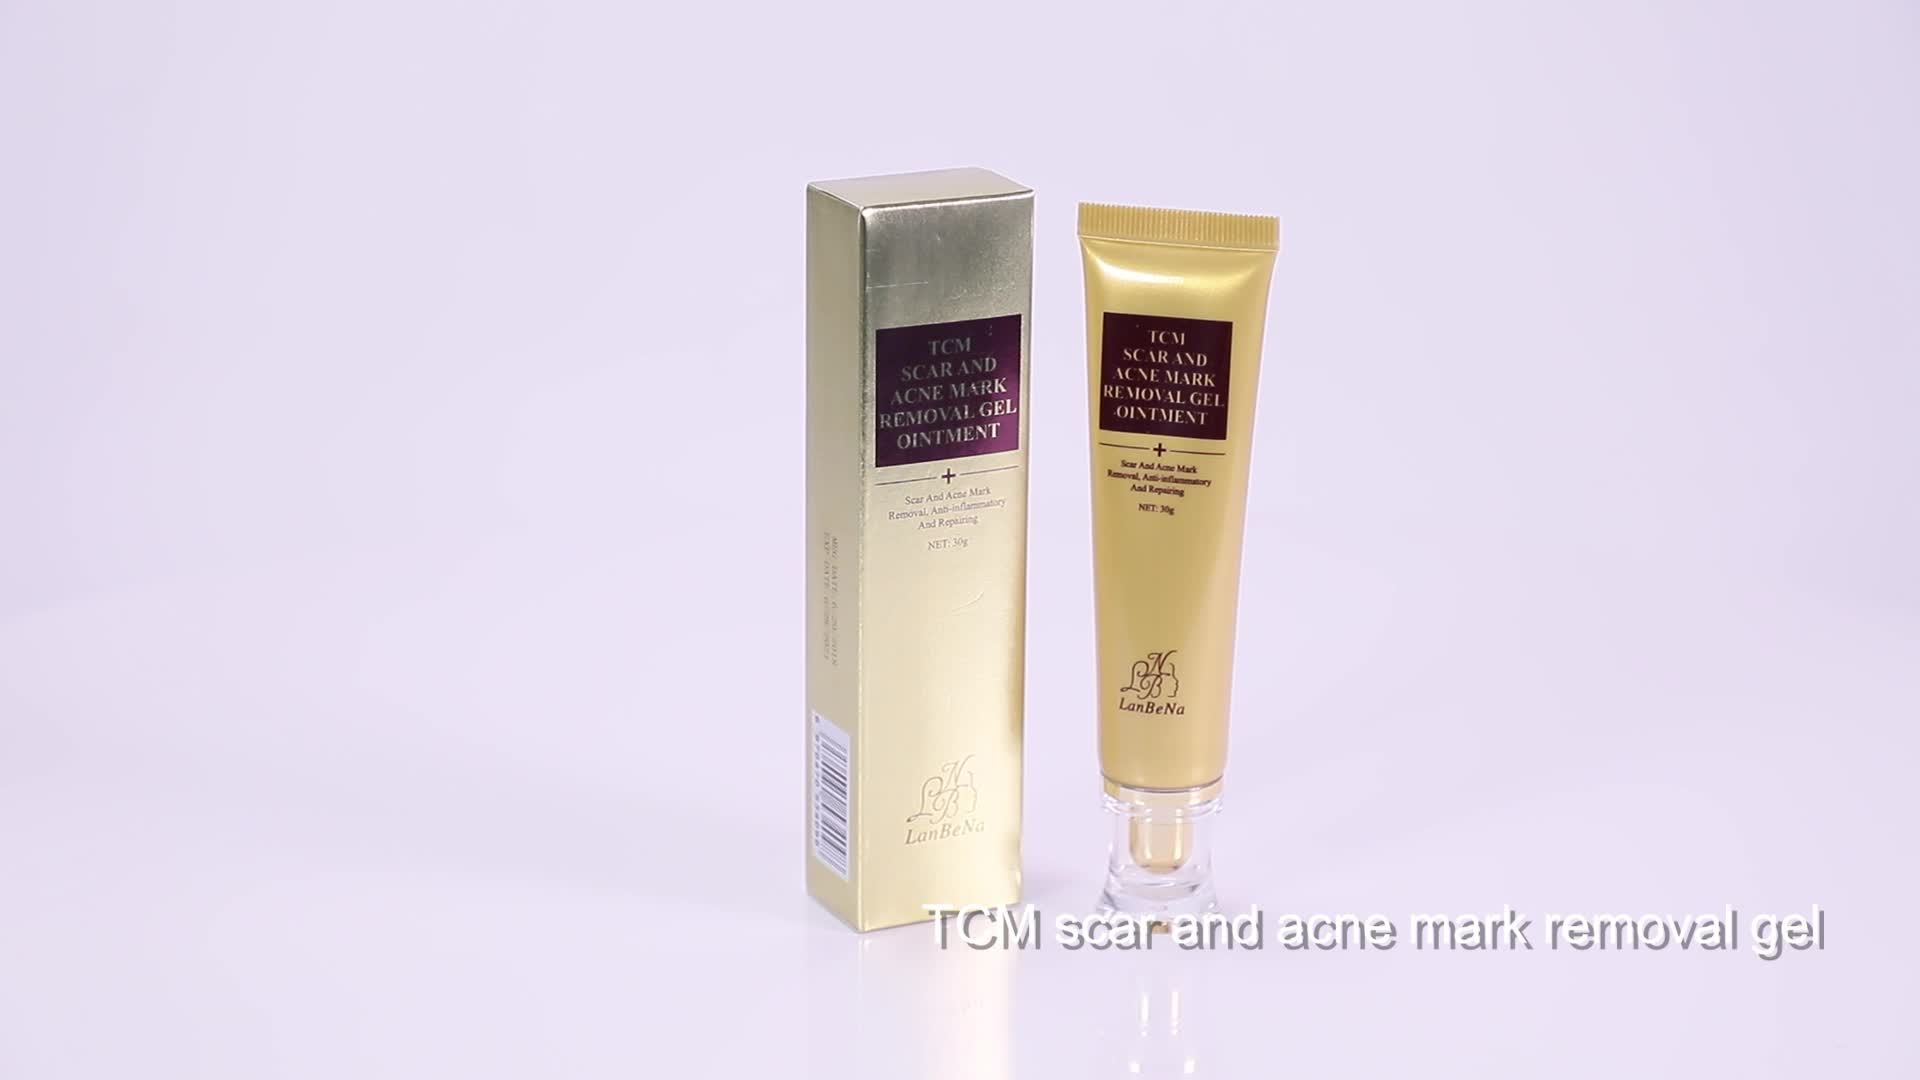 LANBENA tcm scar and acne mark scar removal gel ointment free shipping